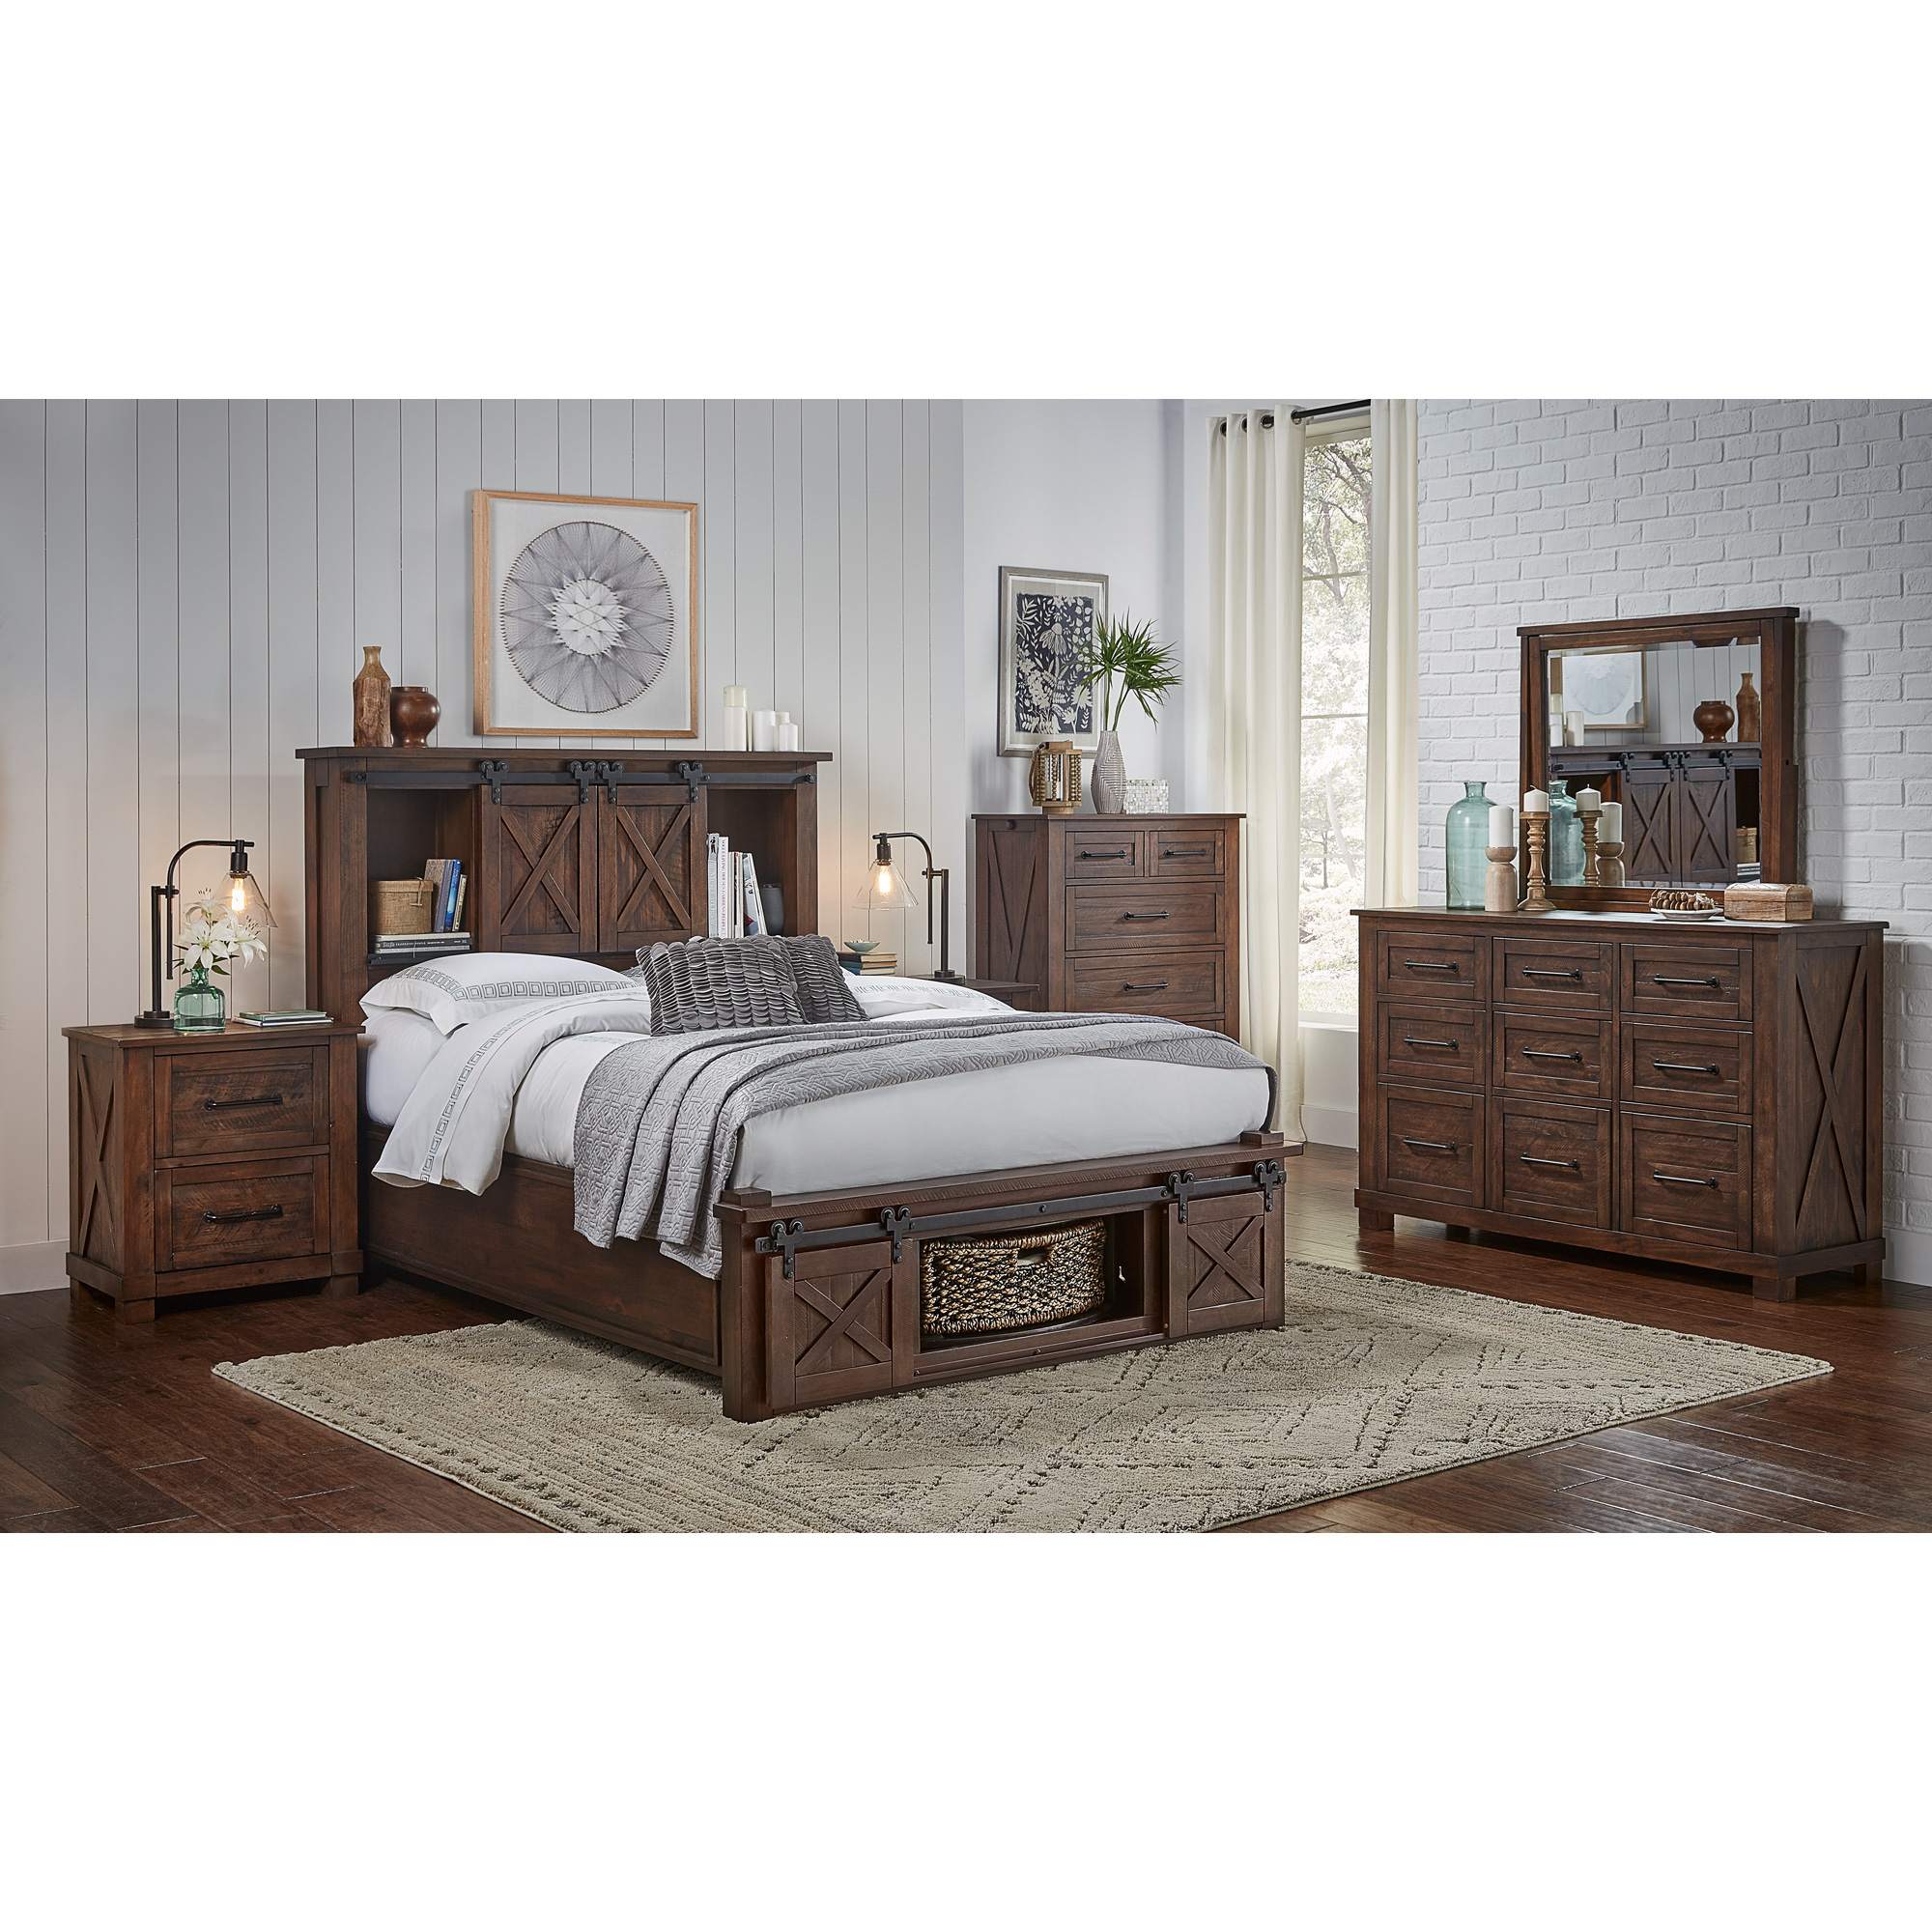 America | Sun Valley Rustic Timber Queen Rotating Storage 4 Piece Room Group Bedroom Set